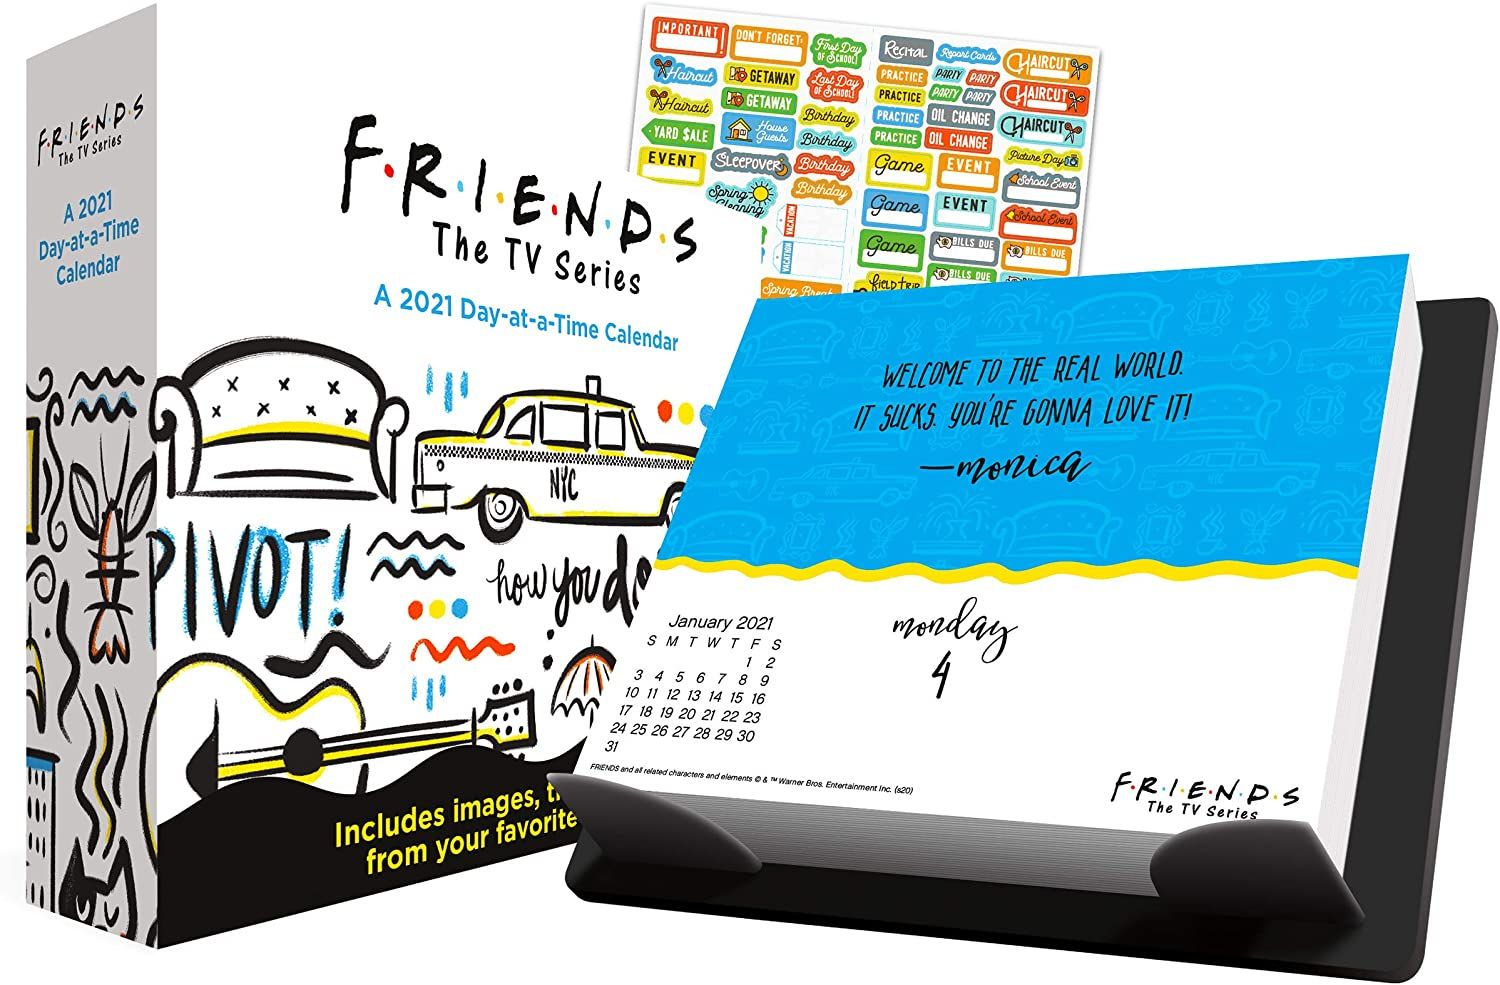 Friends 2021 Calendar, Box Edition Bundle - Deluxe 2021 Friends Day-at-a-Time Box Calendar with Over 100 Calendar Stickers (Friends Gifts, Office Supplies)